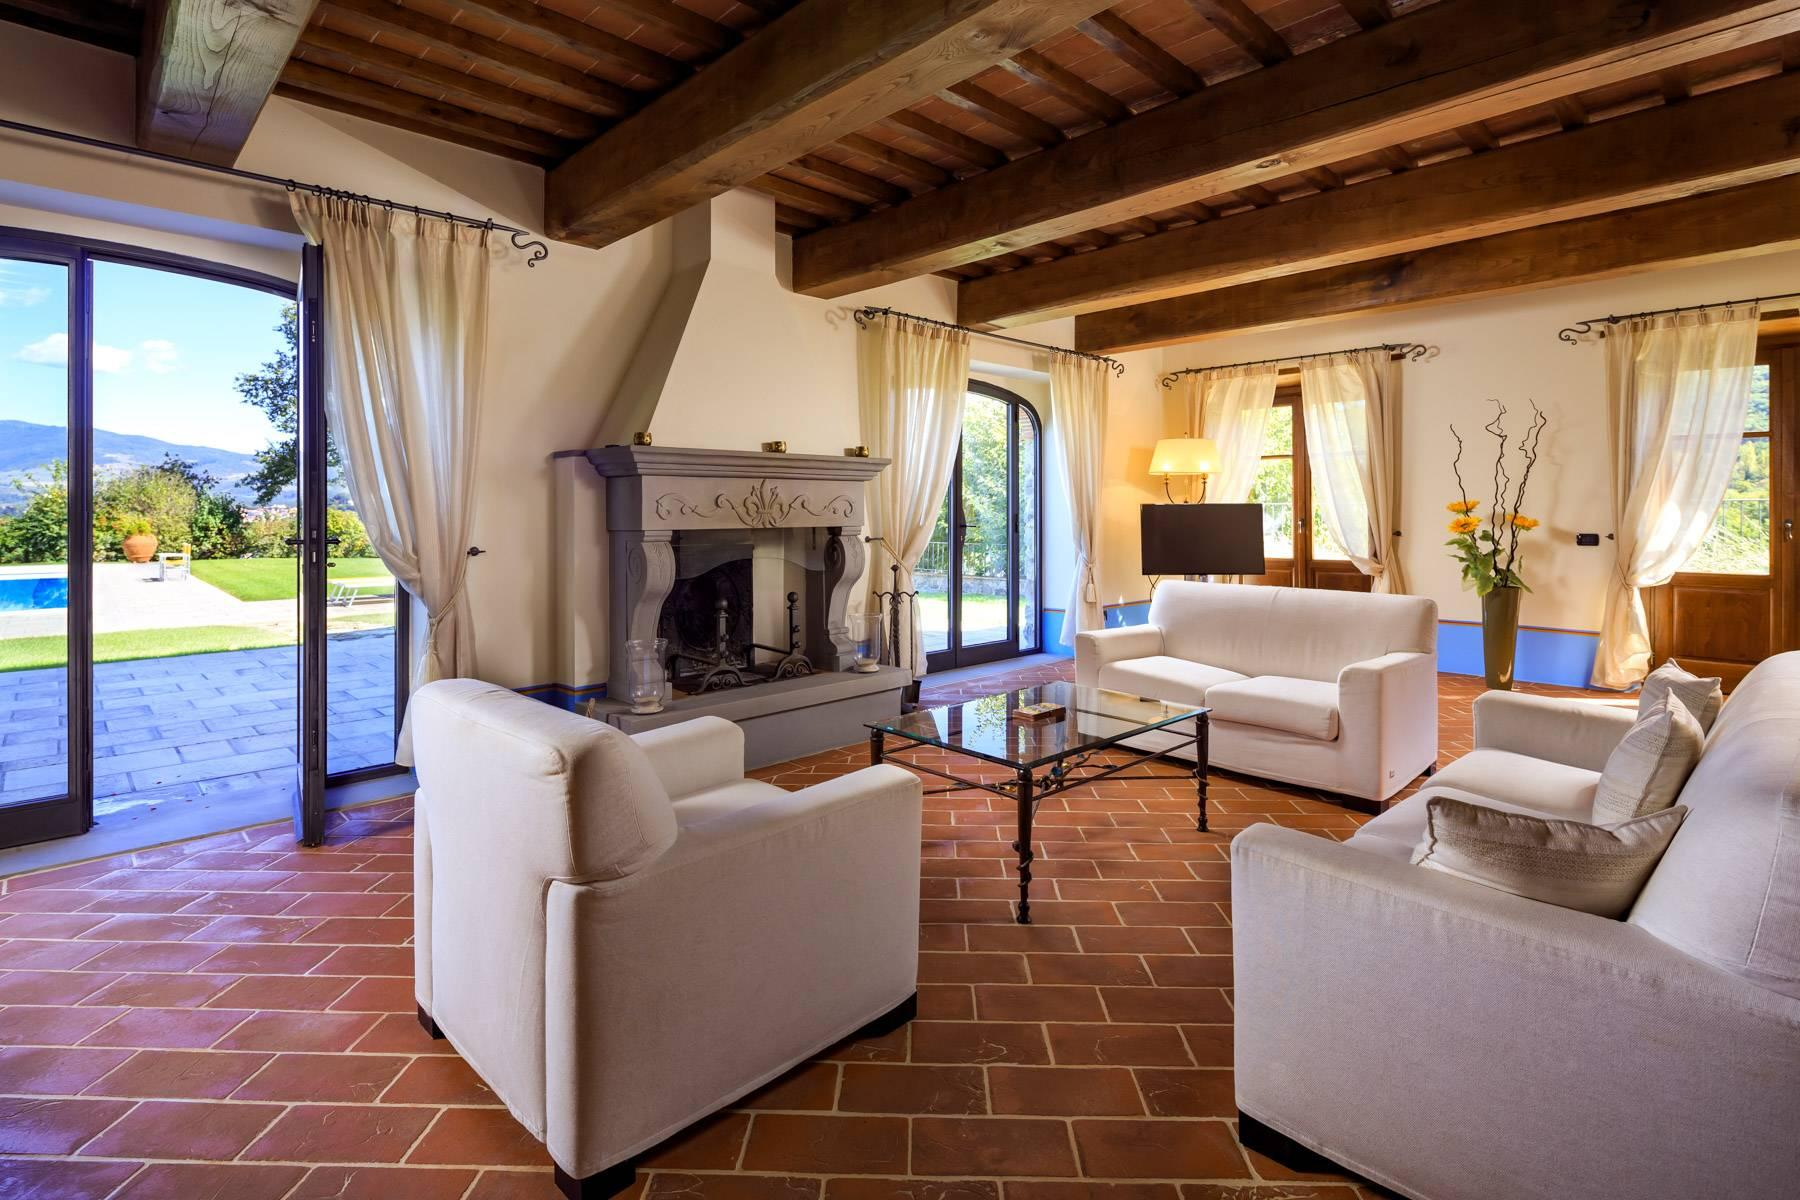 Marvelous estate with views over the Casentino valley - 7